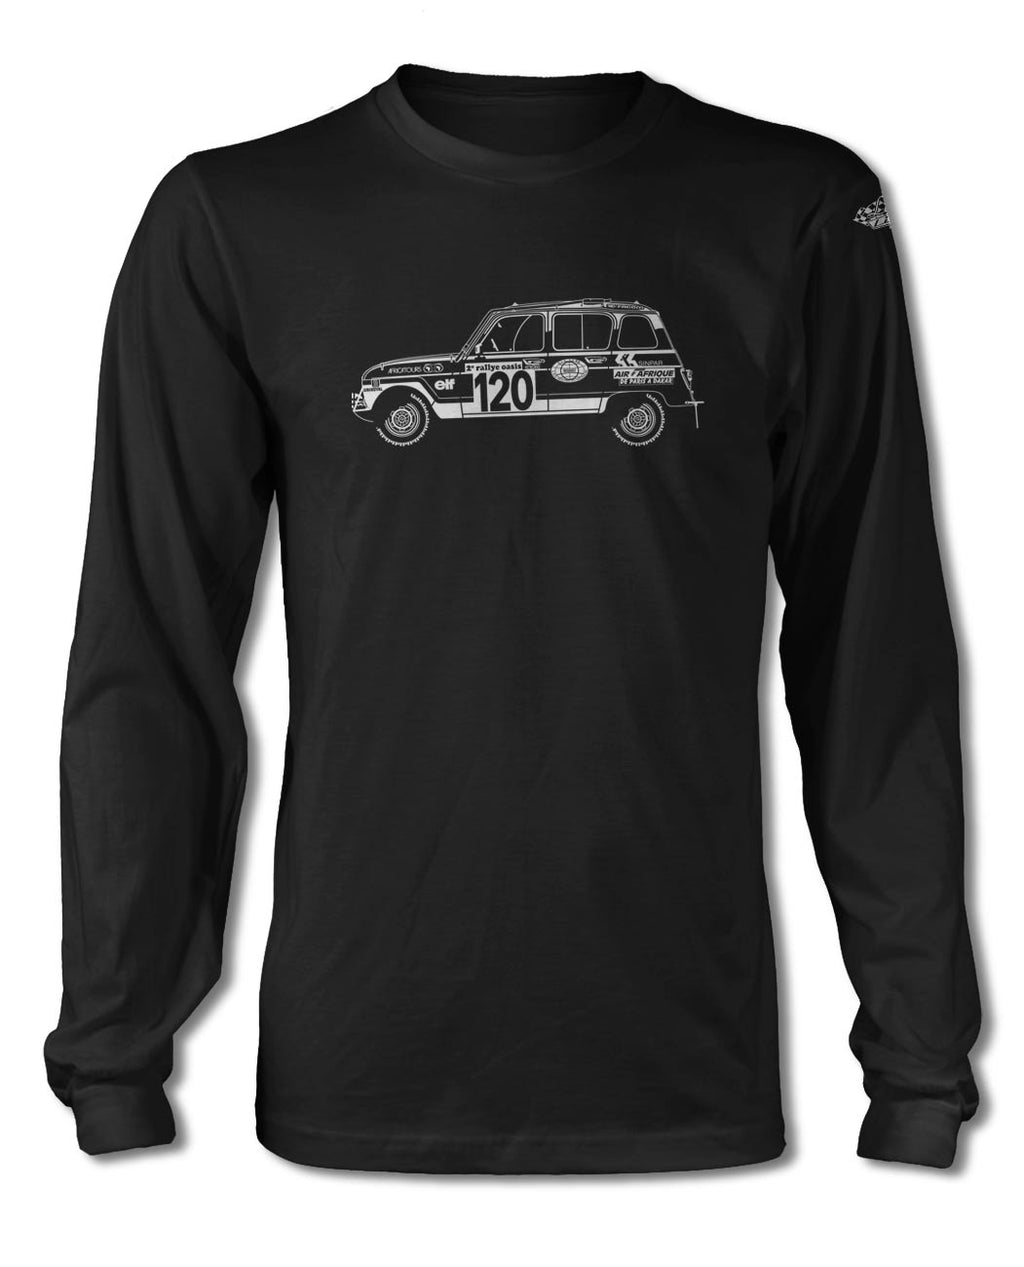 Renault R4 4L Sinpar / Marreau 1979 - 1980 T-Shirt - Long Sleeves - Side View